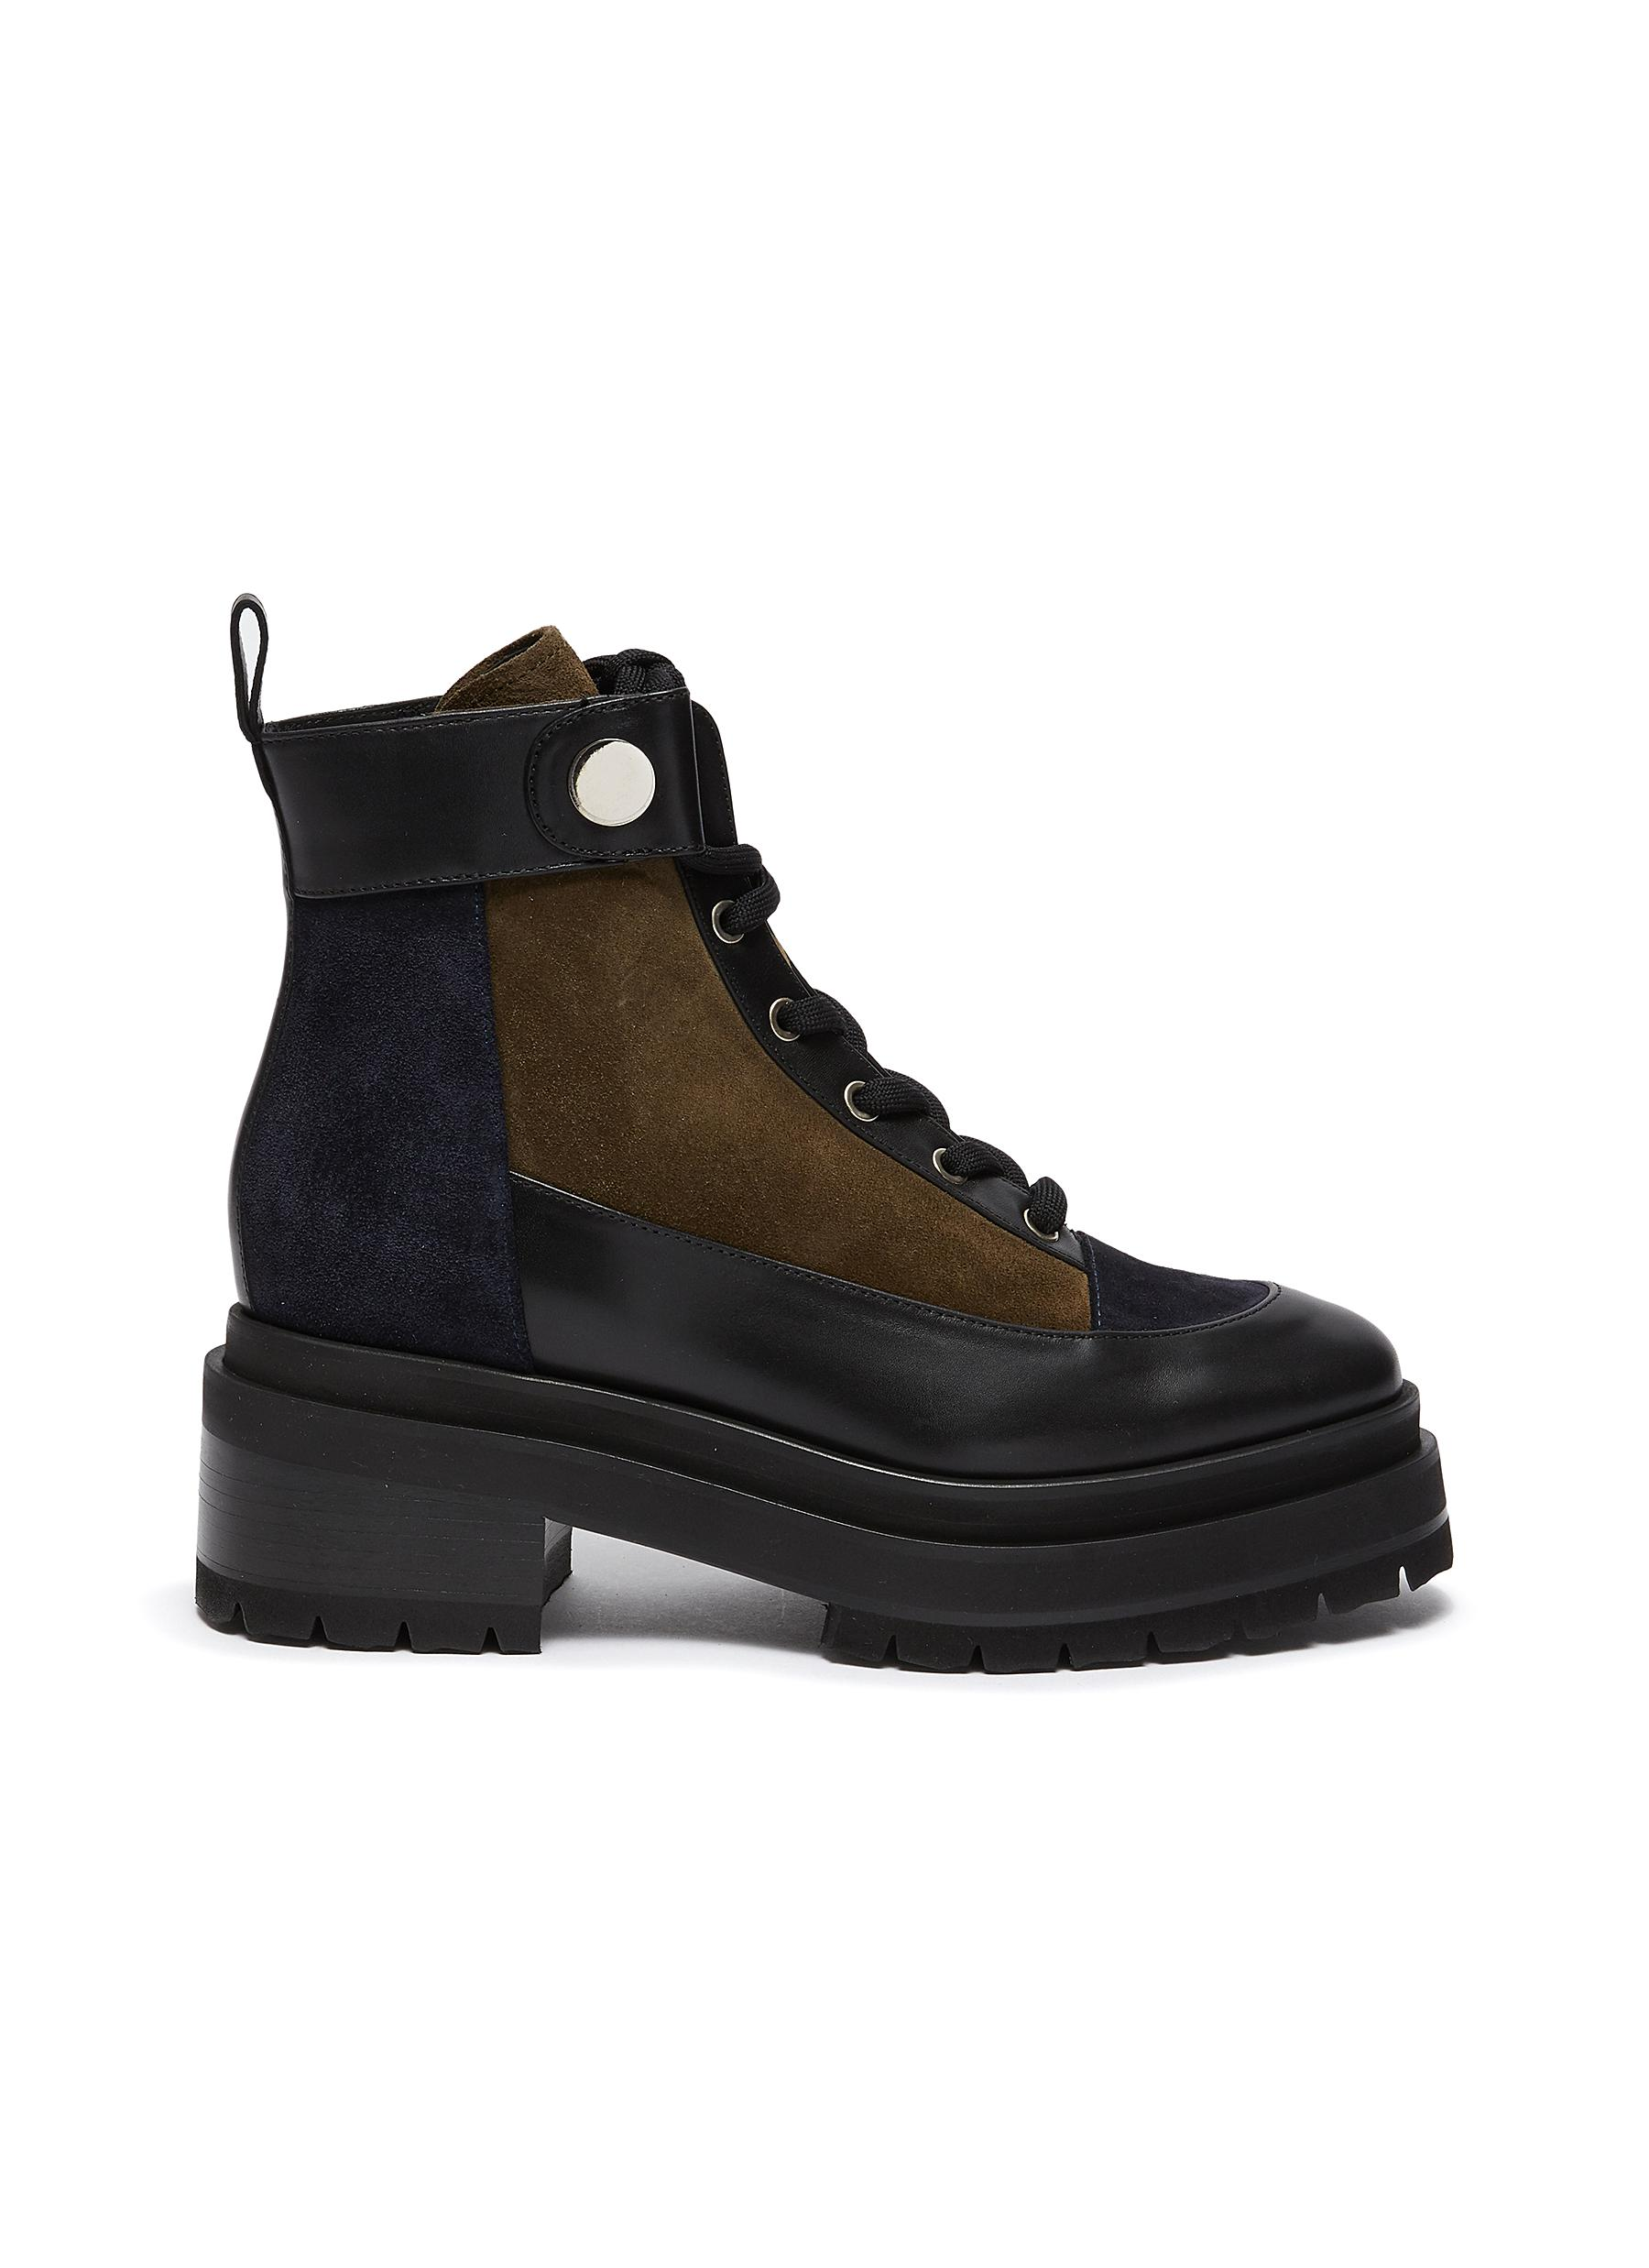 Leather and Suede Penny Lace Up Combat Boots - PIERRE HARDY - Modalova